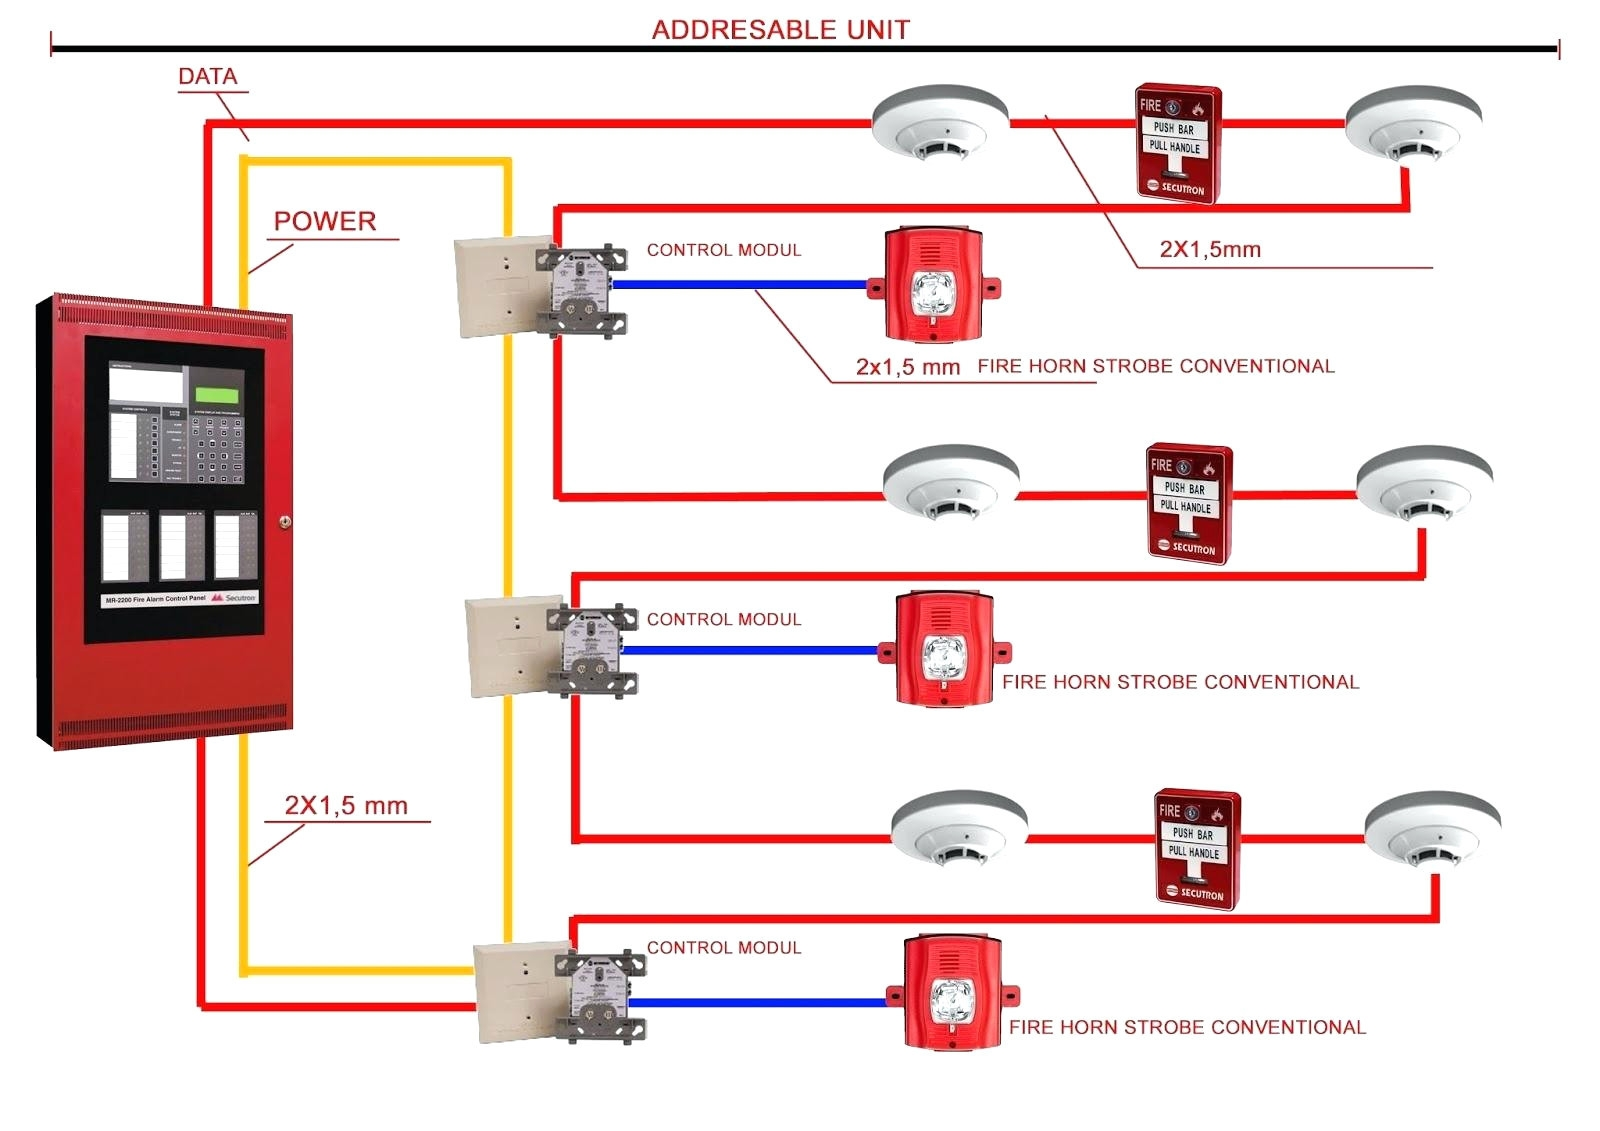 class a fire alarm panel wiring diagram fire alarm control panel wiring diagram | free wiring diagram